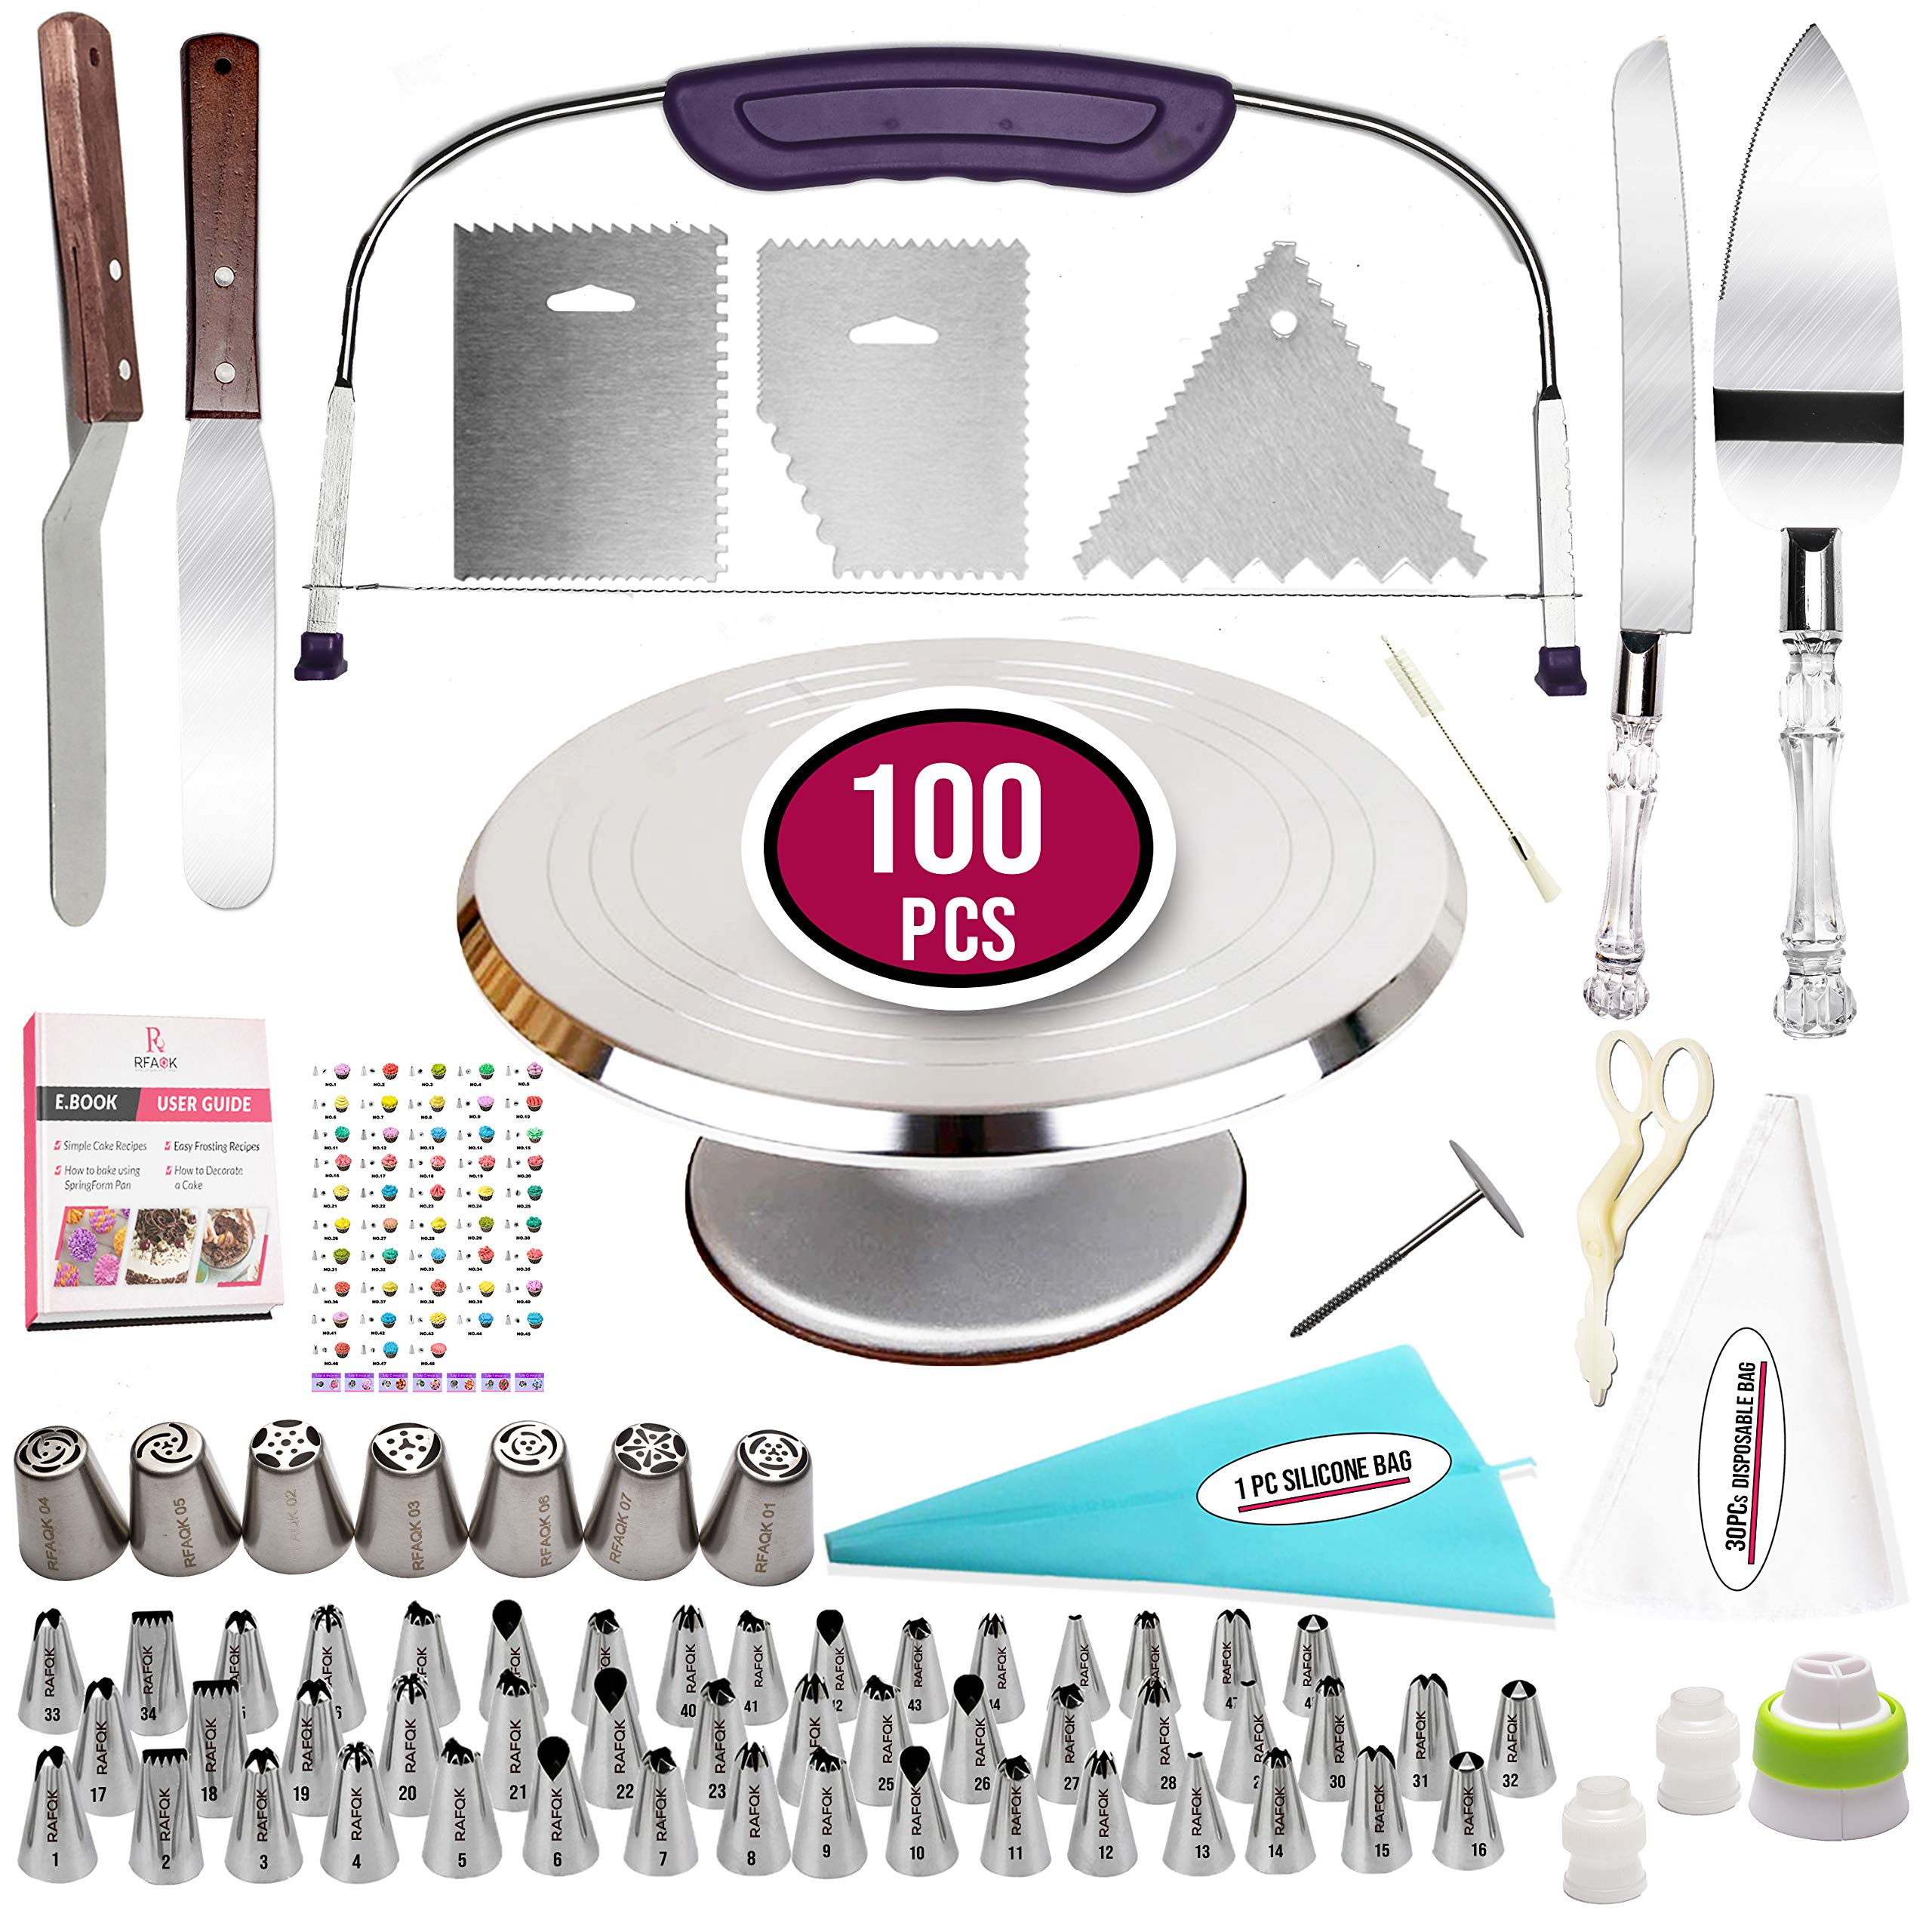 100 Pcs Cake Decorating Kit with Aluminum Metal Turntable-Rotating Stand-Cake server & knife set-48 Numbered Icing tips-7 Russian Piping nozzles-Straight & Angled Spatula-Cake Leveler& Baking supplies